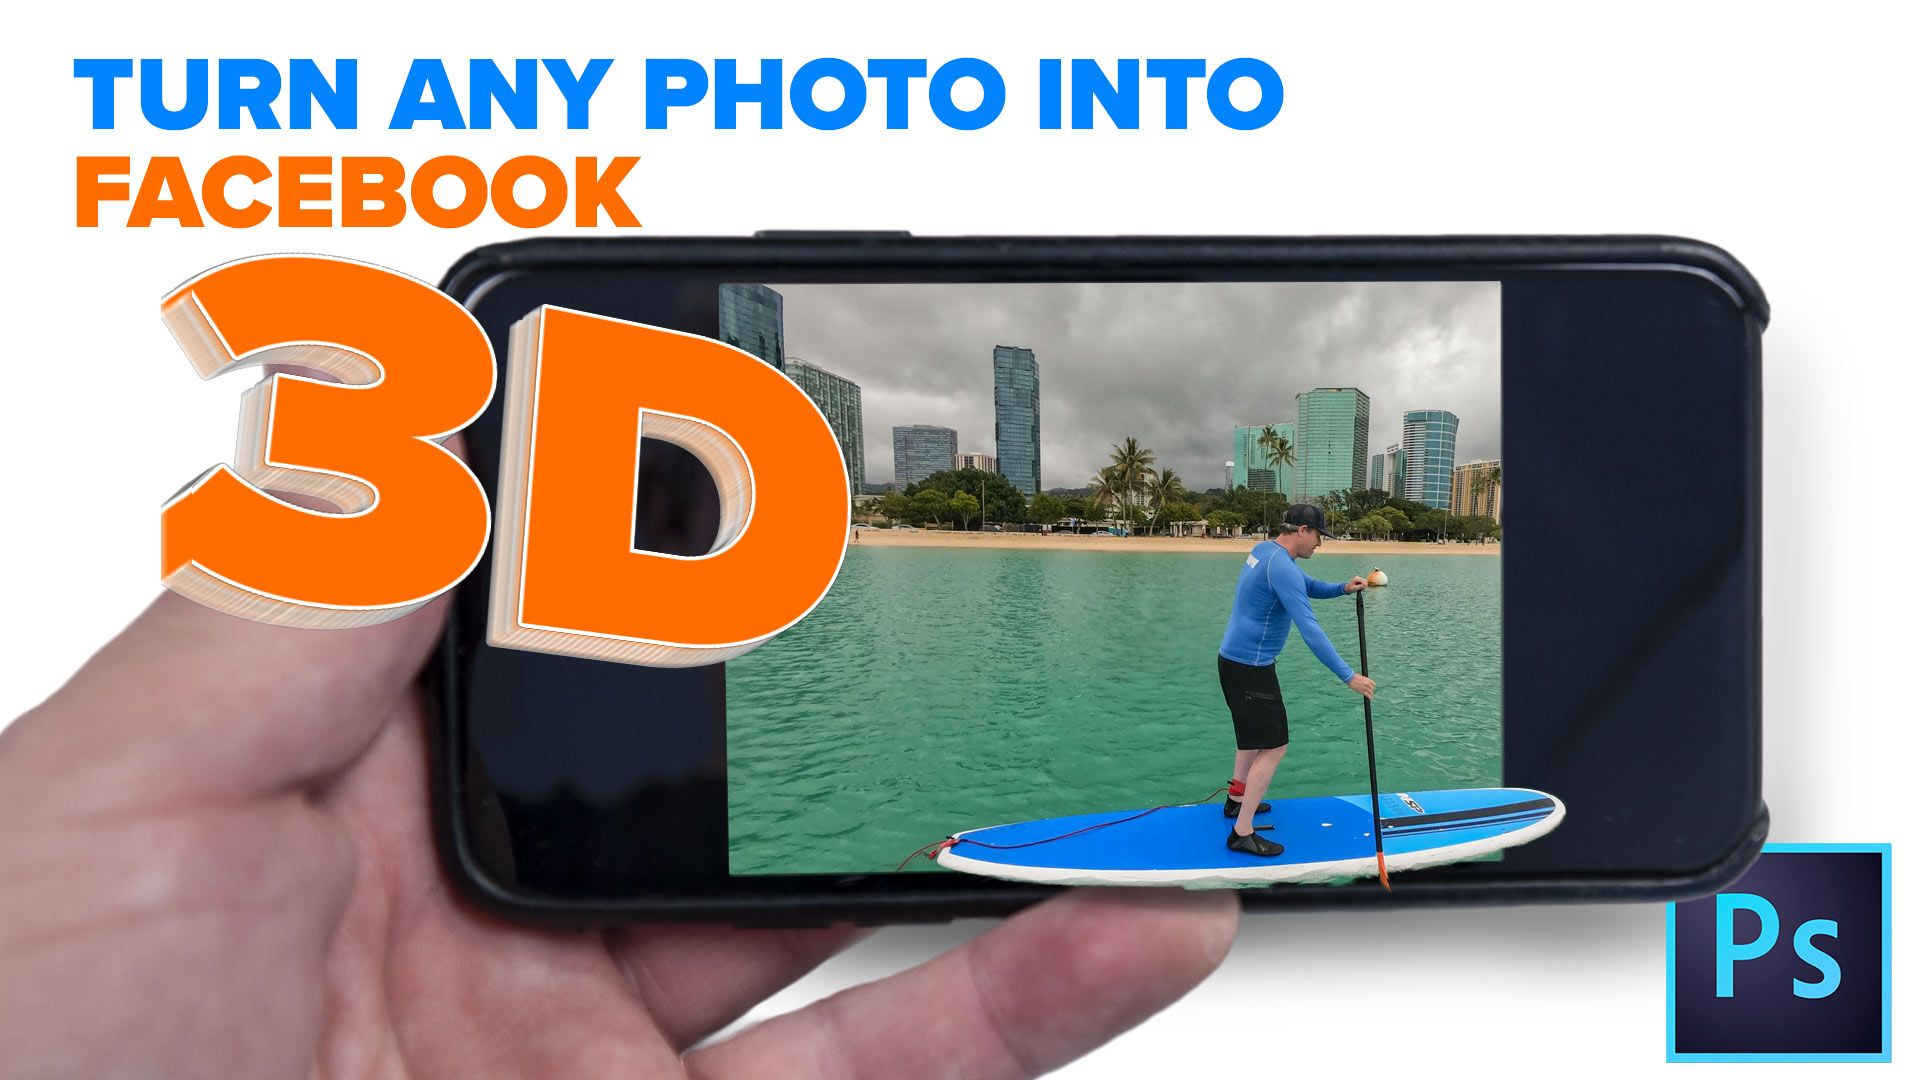 How To Turn Any Photo Into A Facebook 3d Photo In Photoshop Photoshop Youtube Basic Photoshop Tutorials Photoshop